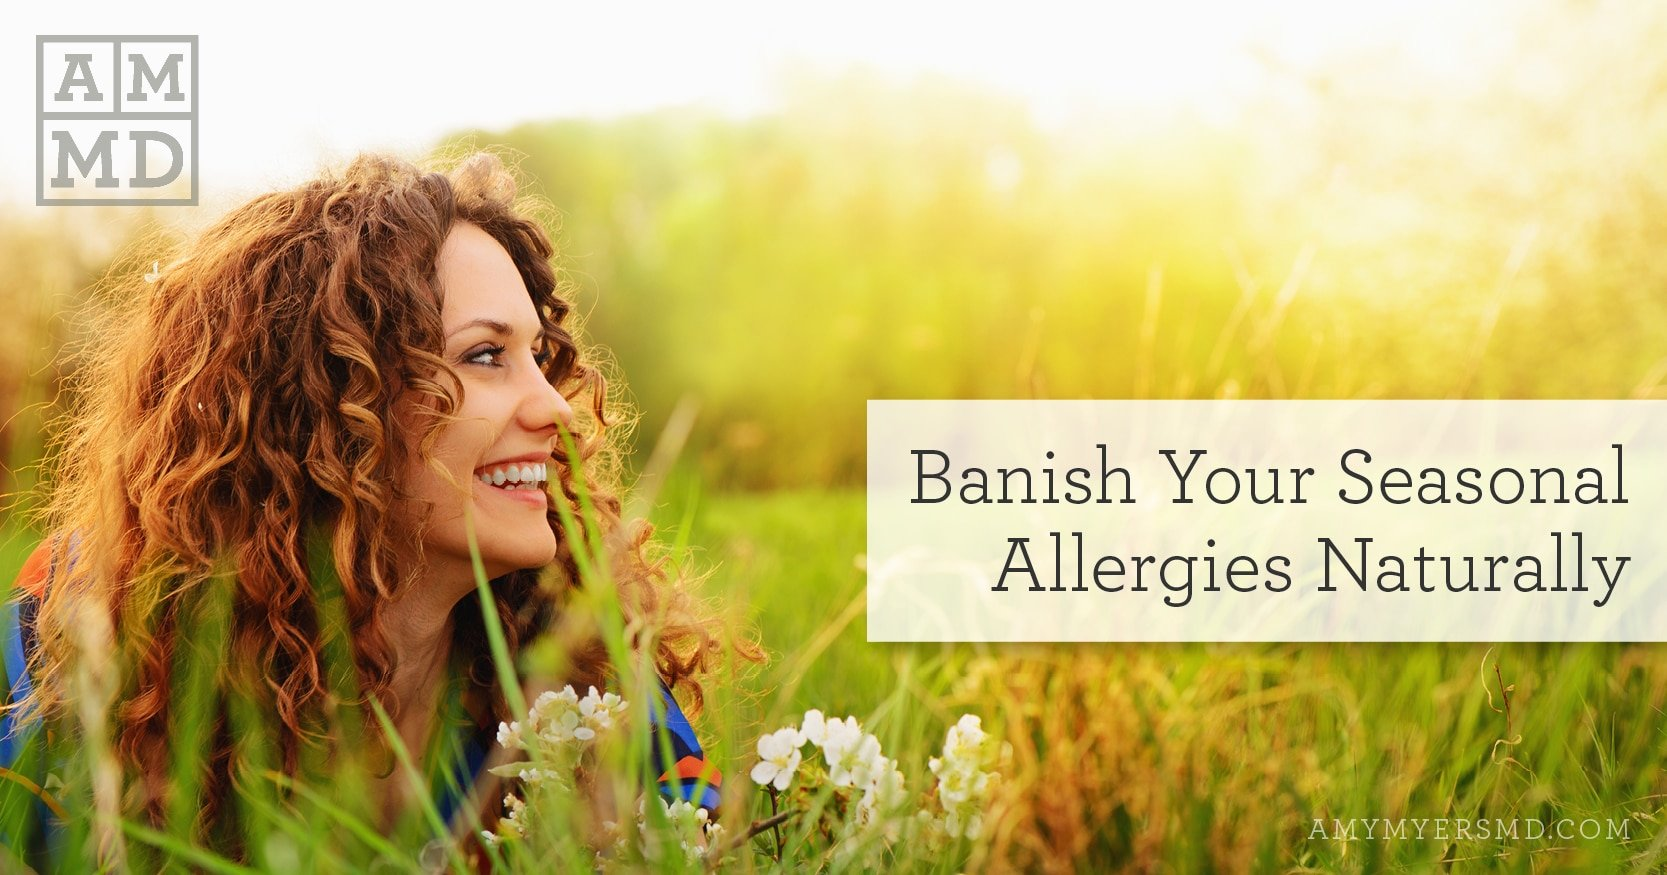 banish seasonal allergies naturally